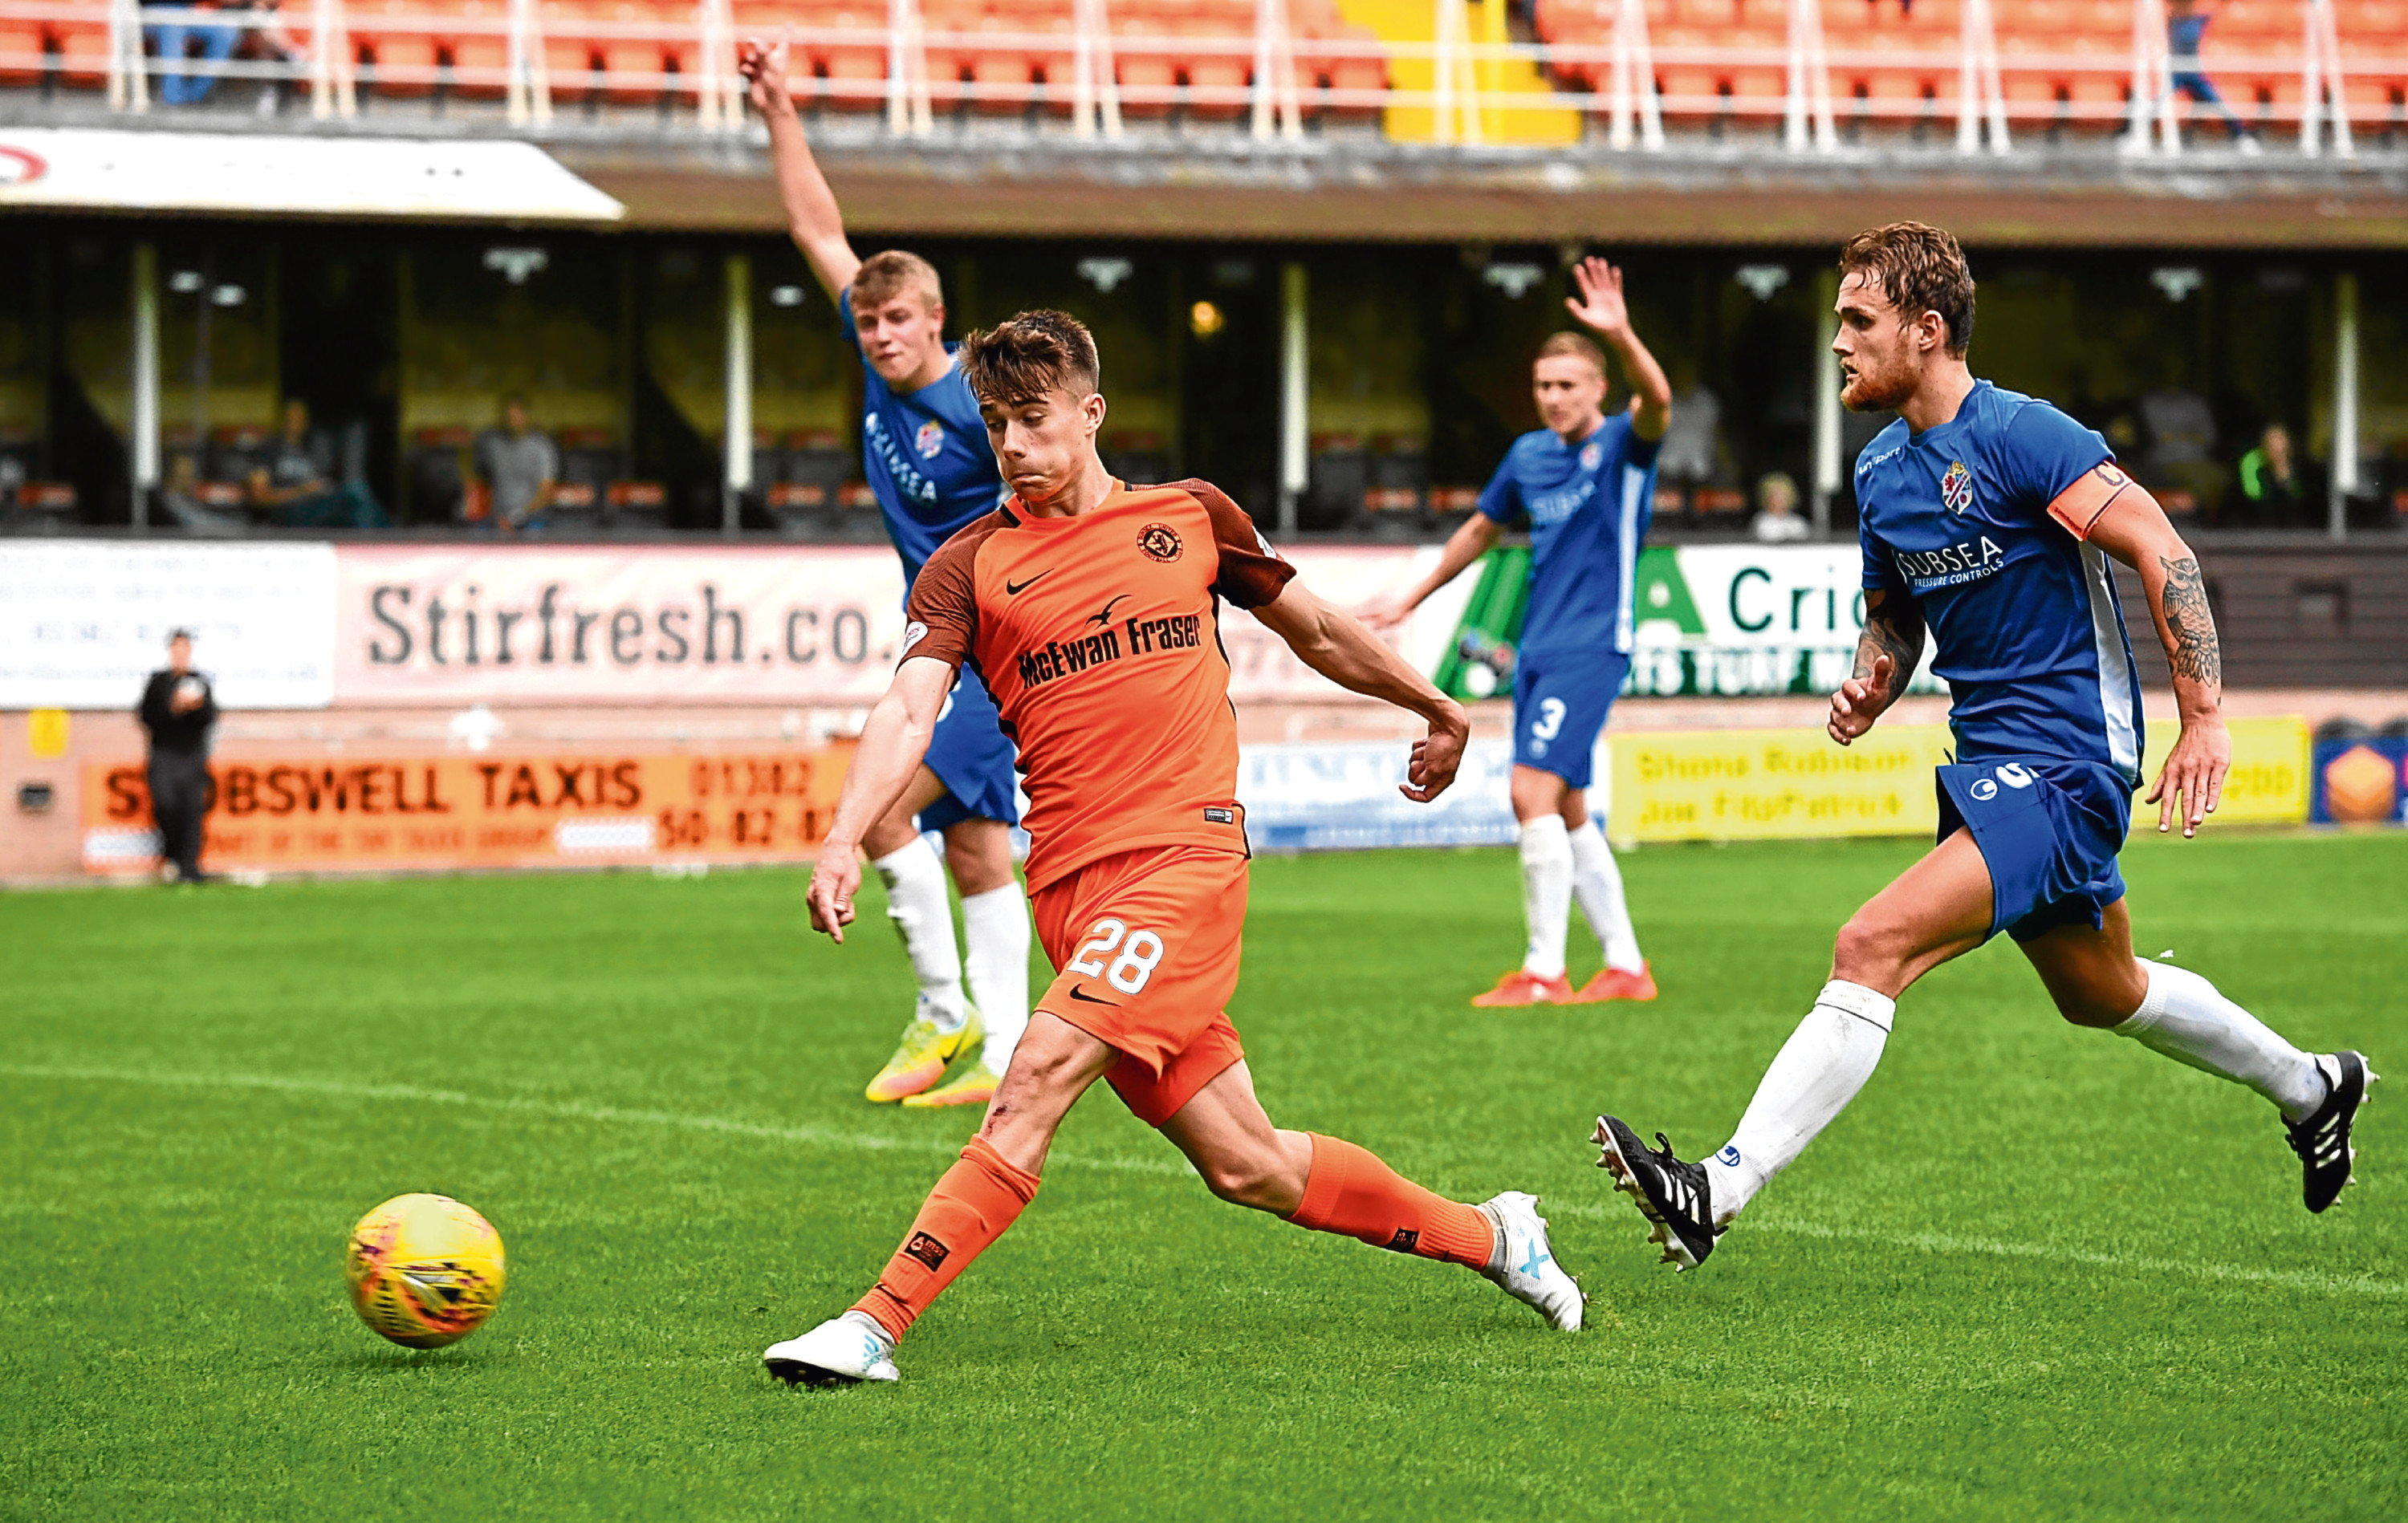 Matty Smith stepped up to lead the line for United, bagging the fourth and final goal against Cowdenbeath in the absence of first-choice strikers.